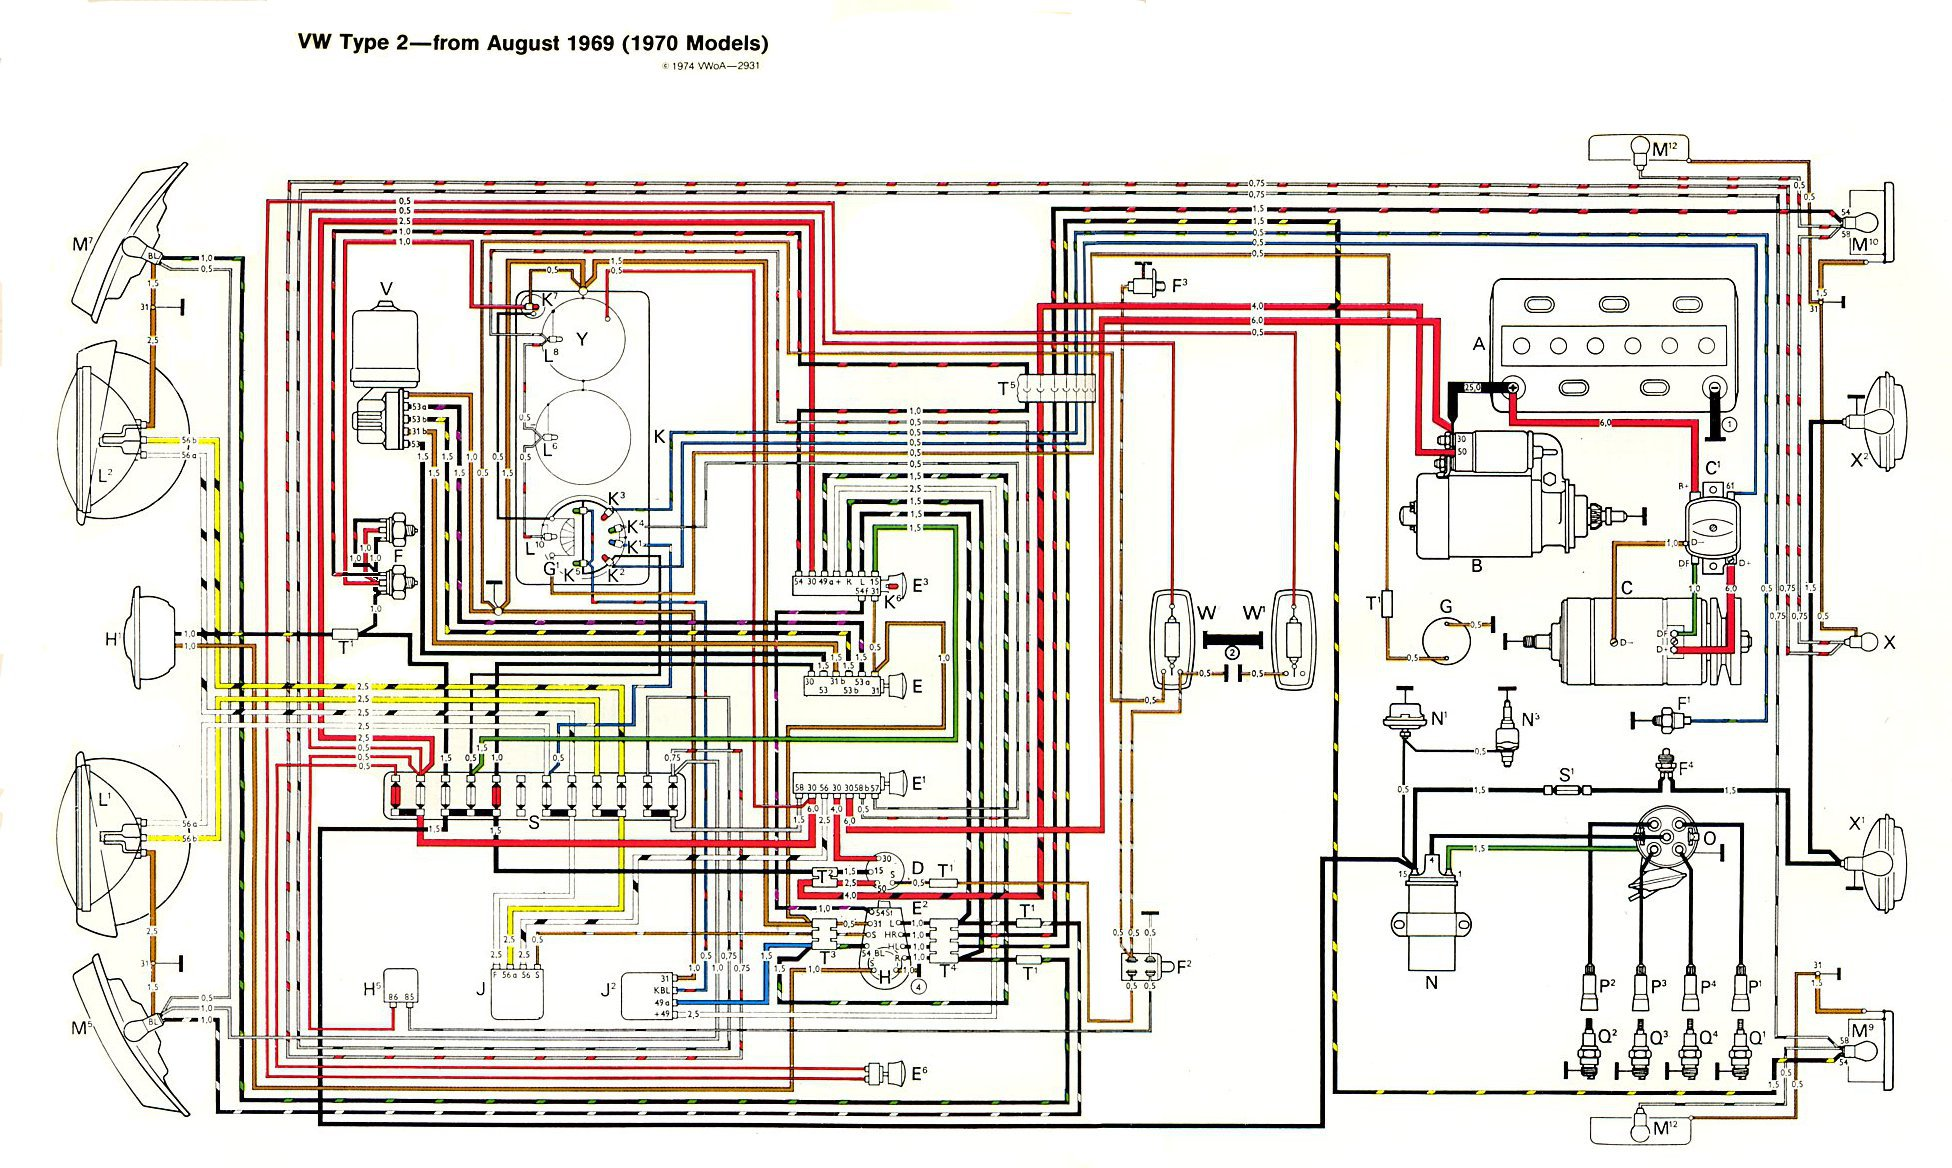 baybus_70 thesamba com type 2 wiring diagrams 1971 vw bus wiring diagram at mr168.co